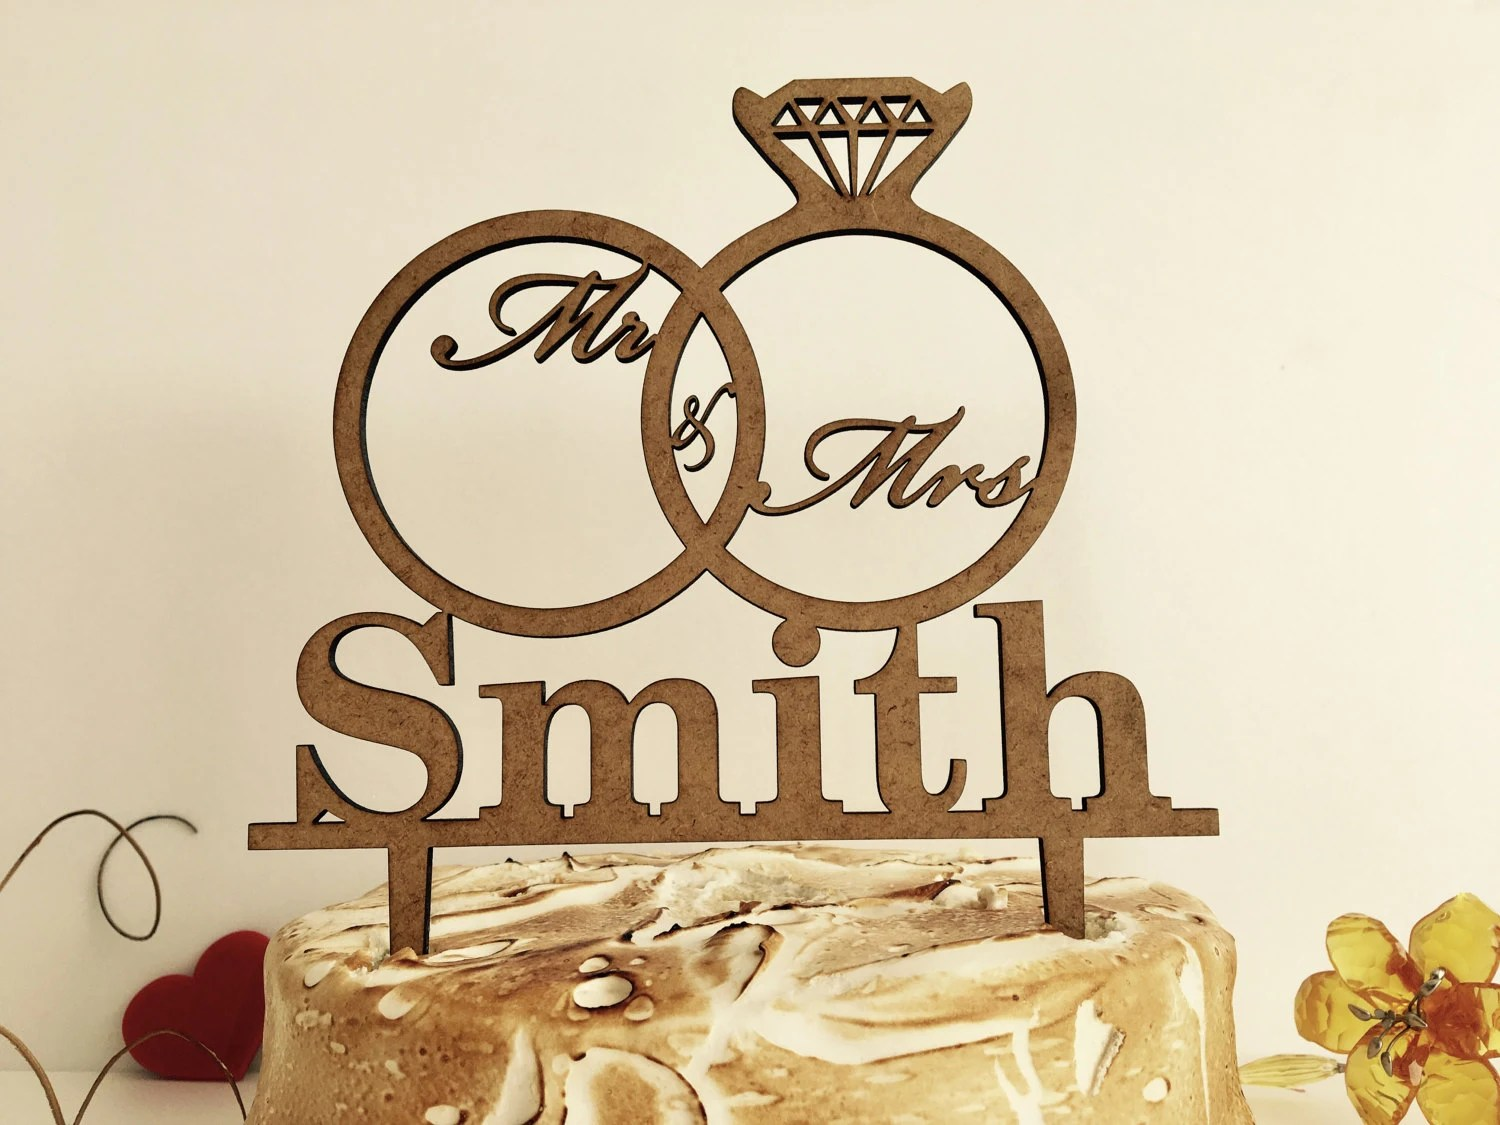 personalized wedding cake topper mr and wedding ring cake topper Personalized Wedding Cake Topper Mr and Mrs Custom Cake Topper Wooden Cake Topper Ring Cake Topper Wedding Rings with Mr Mrs laurel wreath